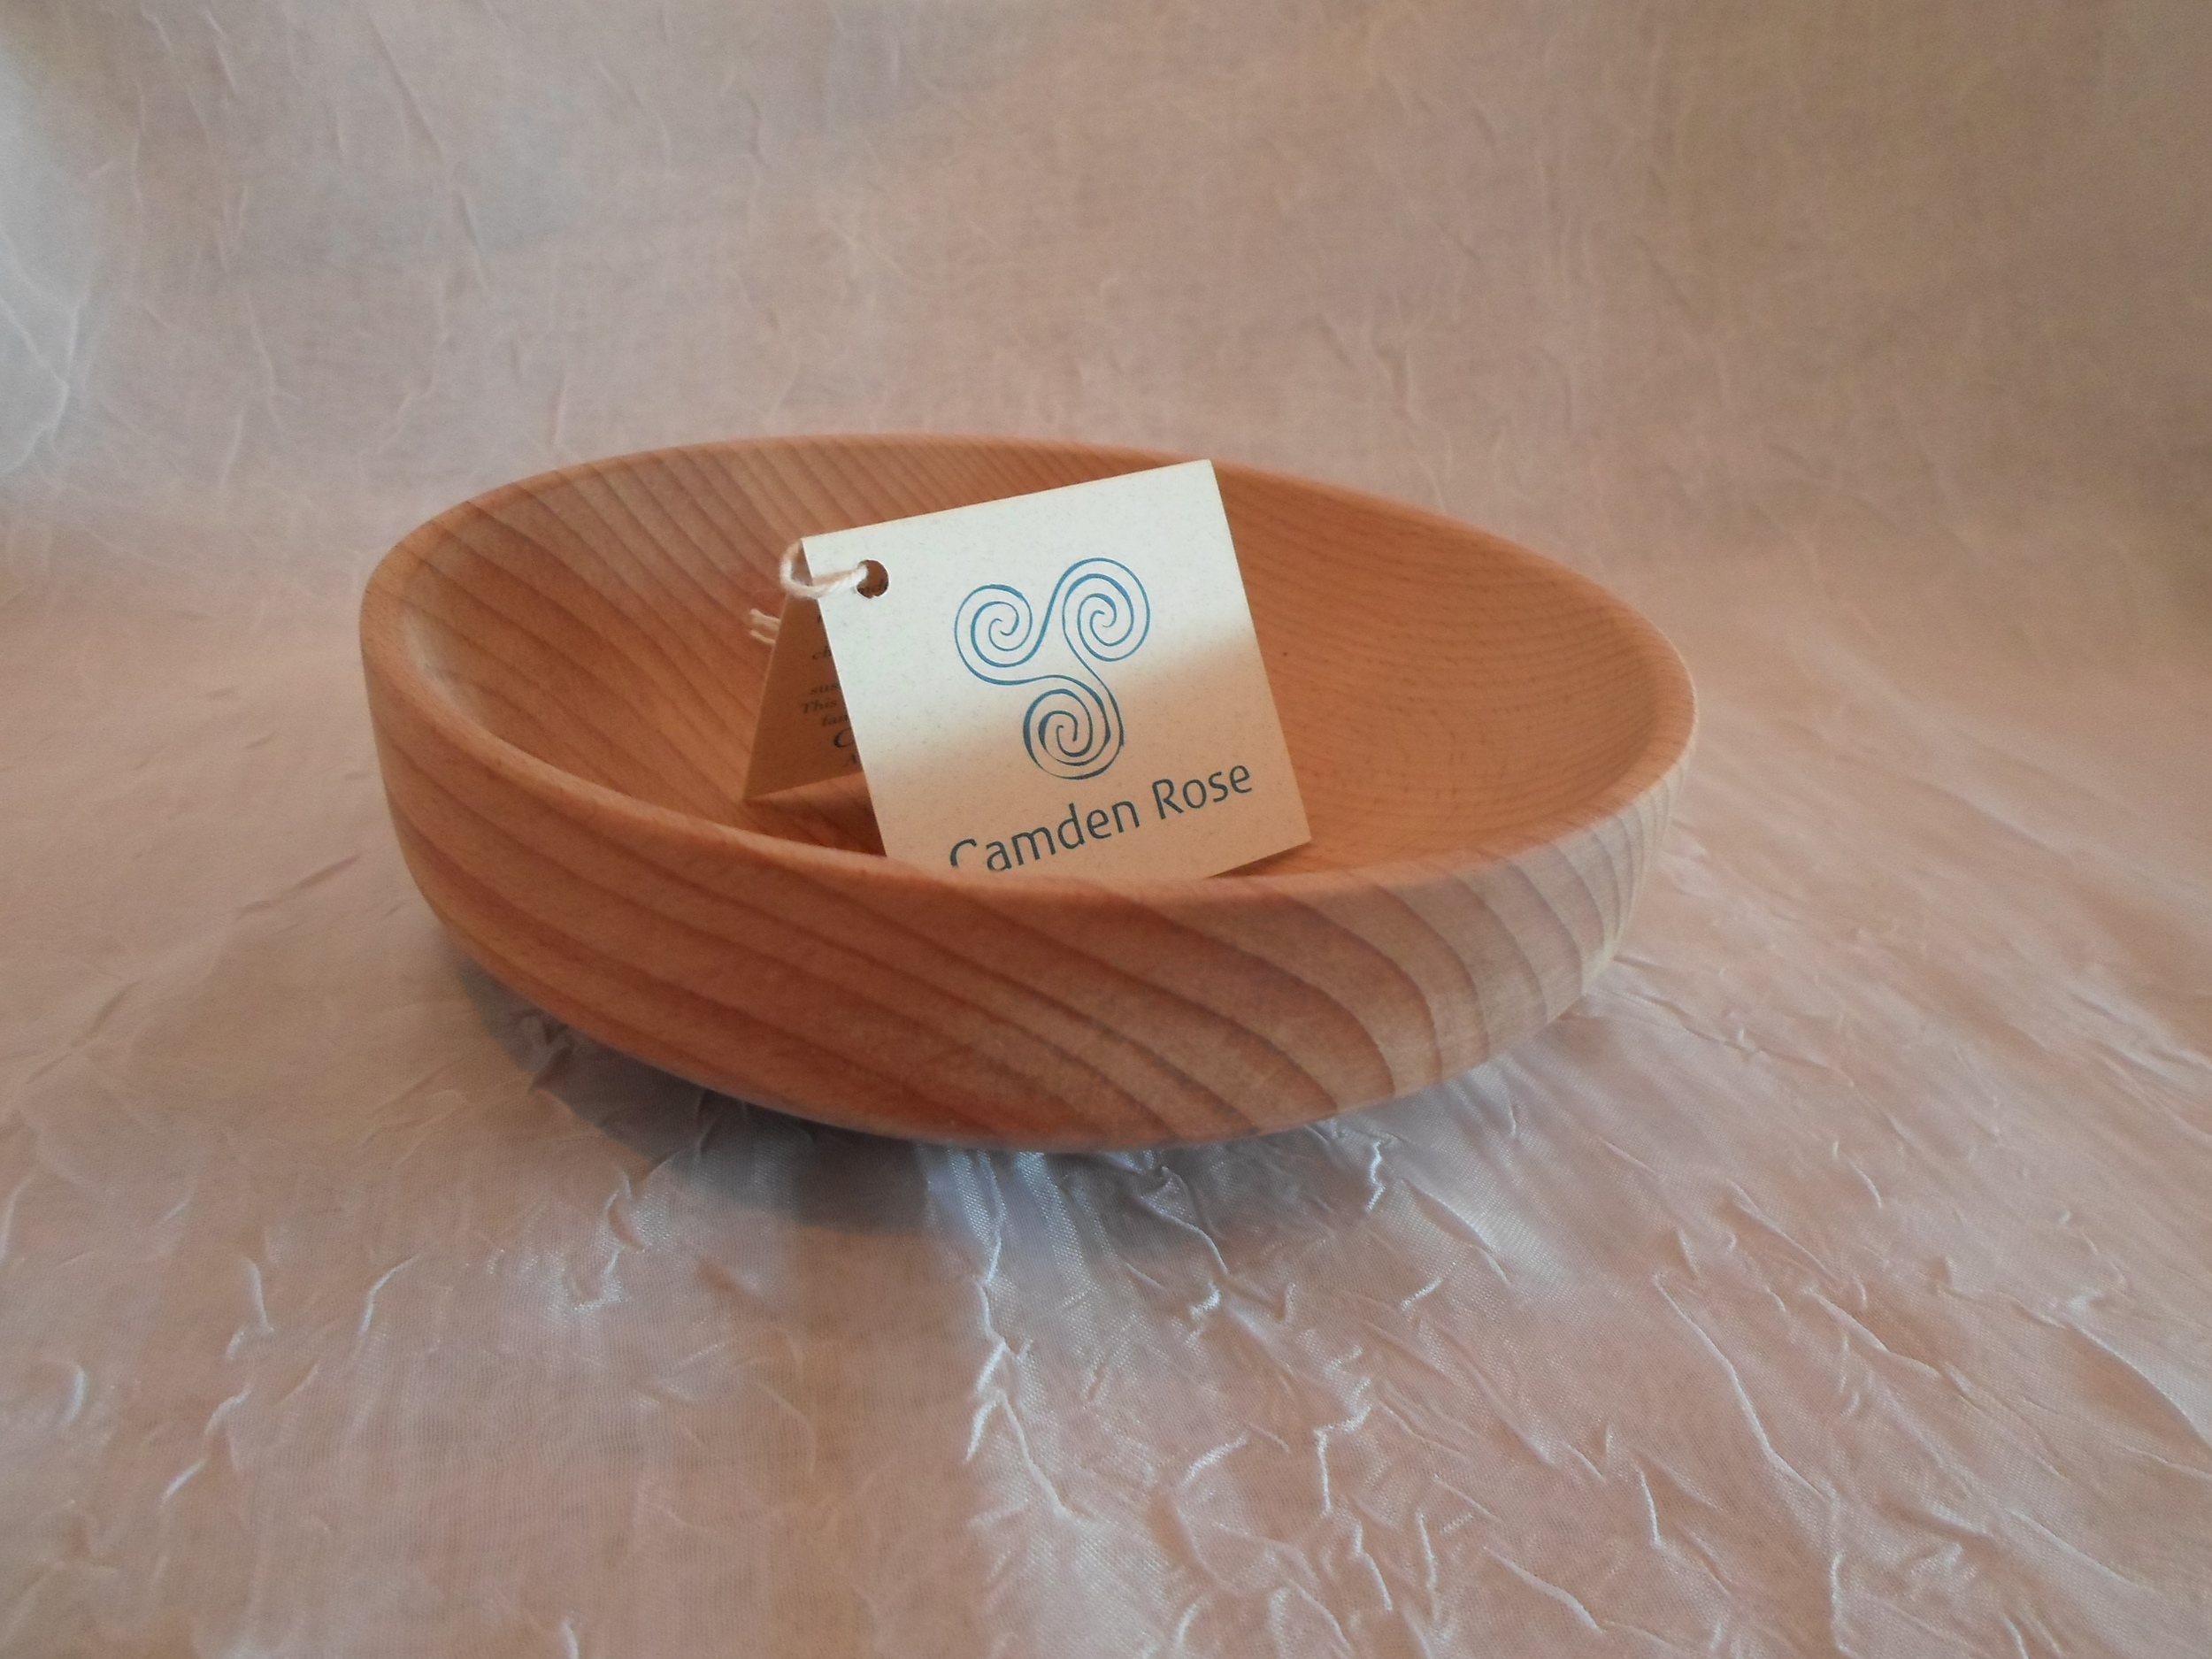 Camden Rose Cherry Baby Bowl - made in USA    $15.99    Wants 1  PURCHASED